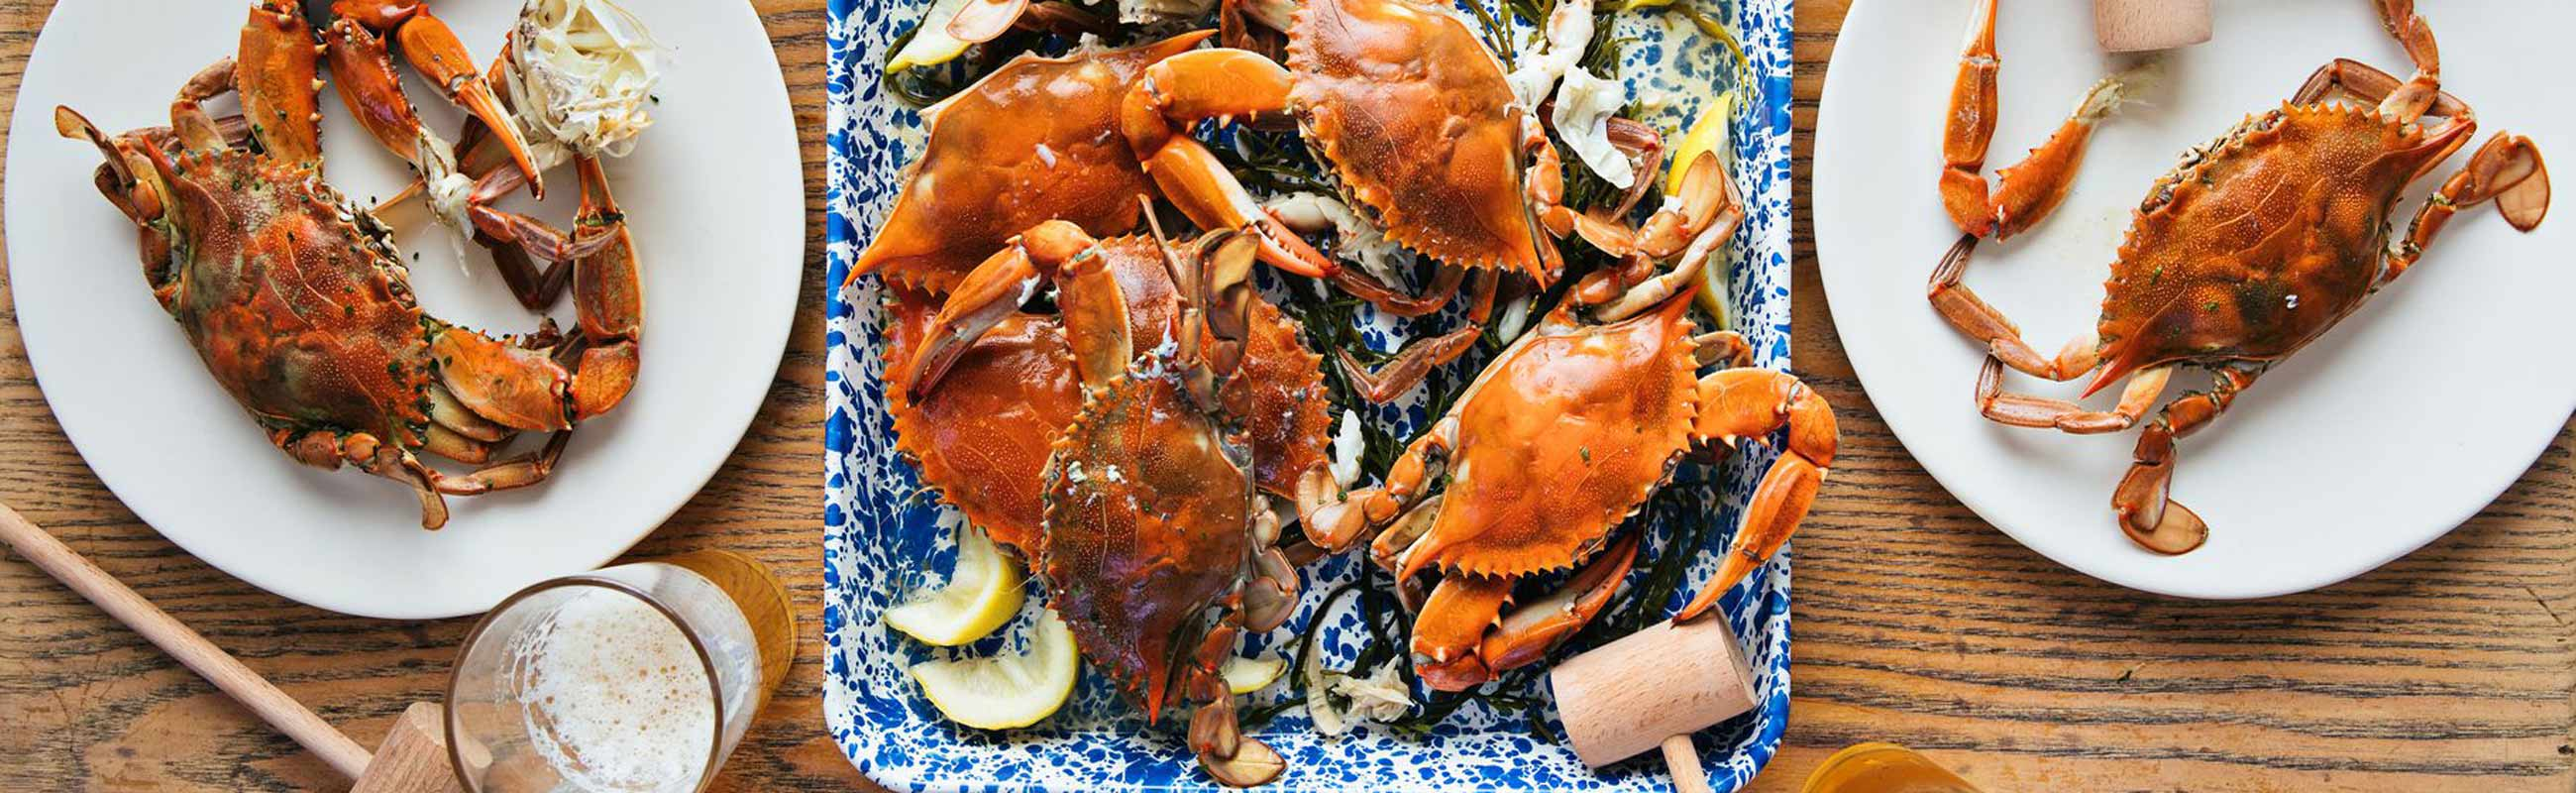 maryland blue crab feast